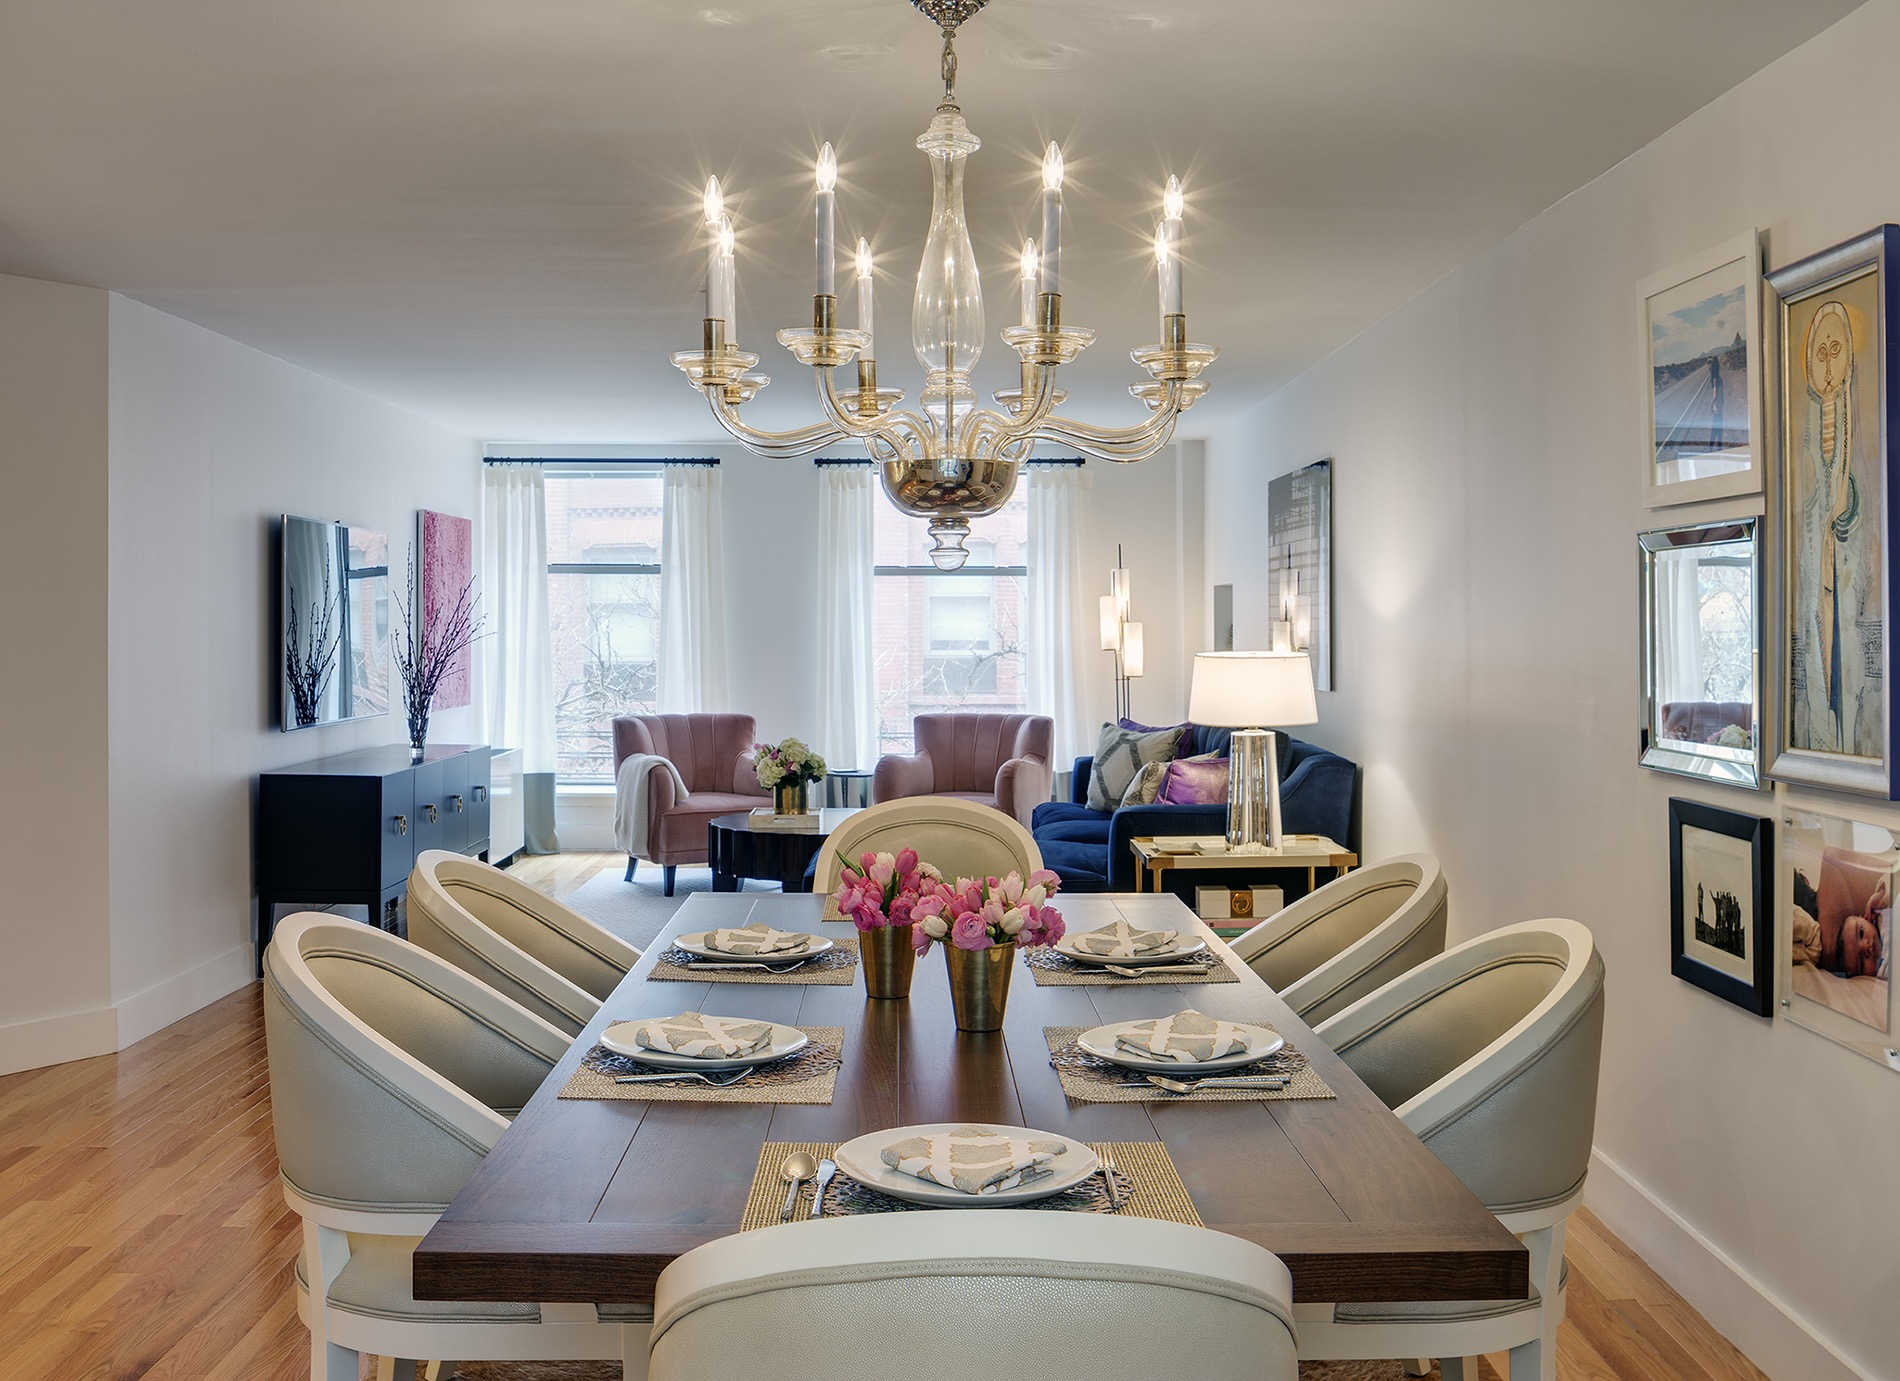 Living And Dining Room Combination Manifests Stylish Comfort (View 22 of 34)